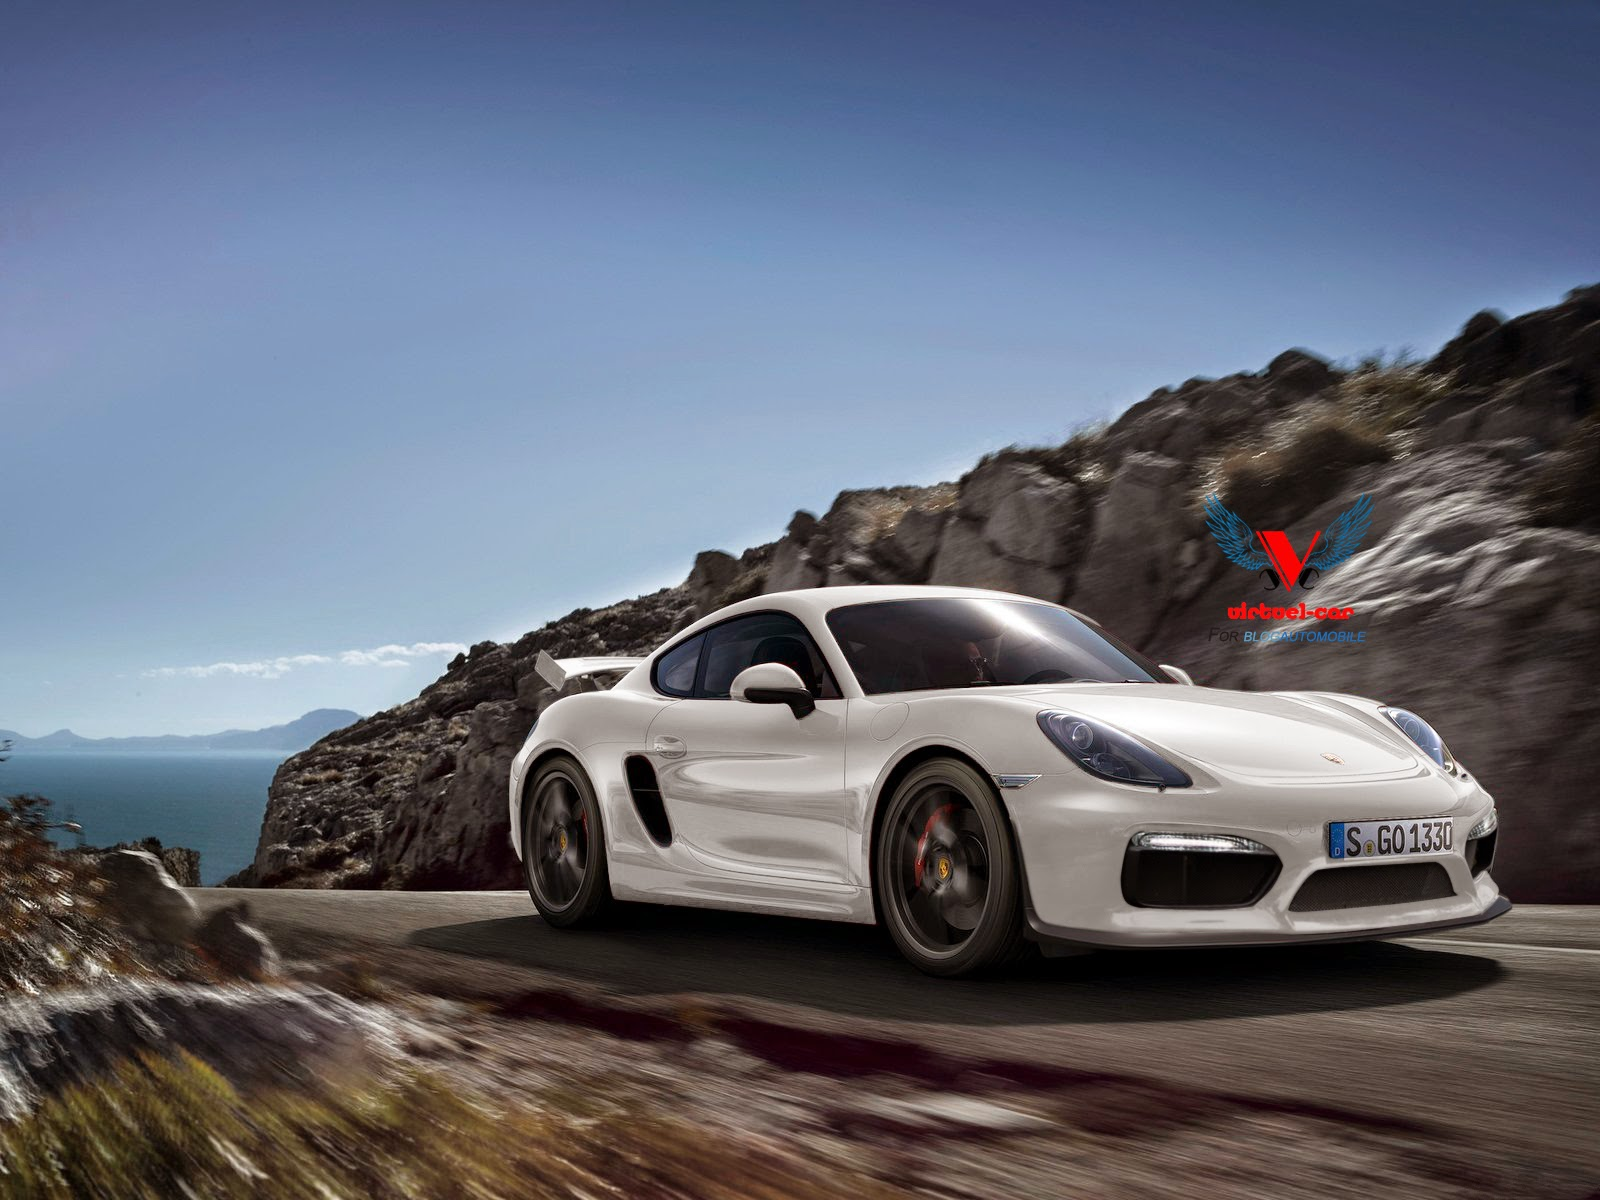 ... Porsche Cayman GT4 Rendered: More Power and a Big Wing - autoevolution